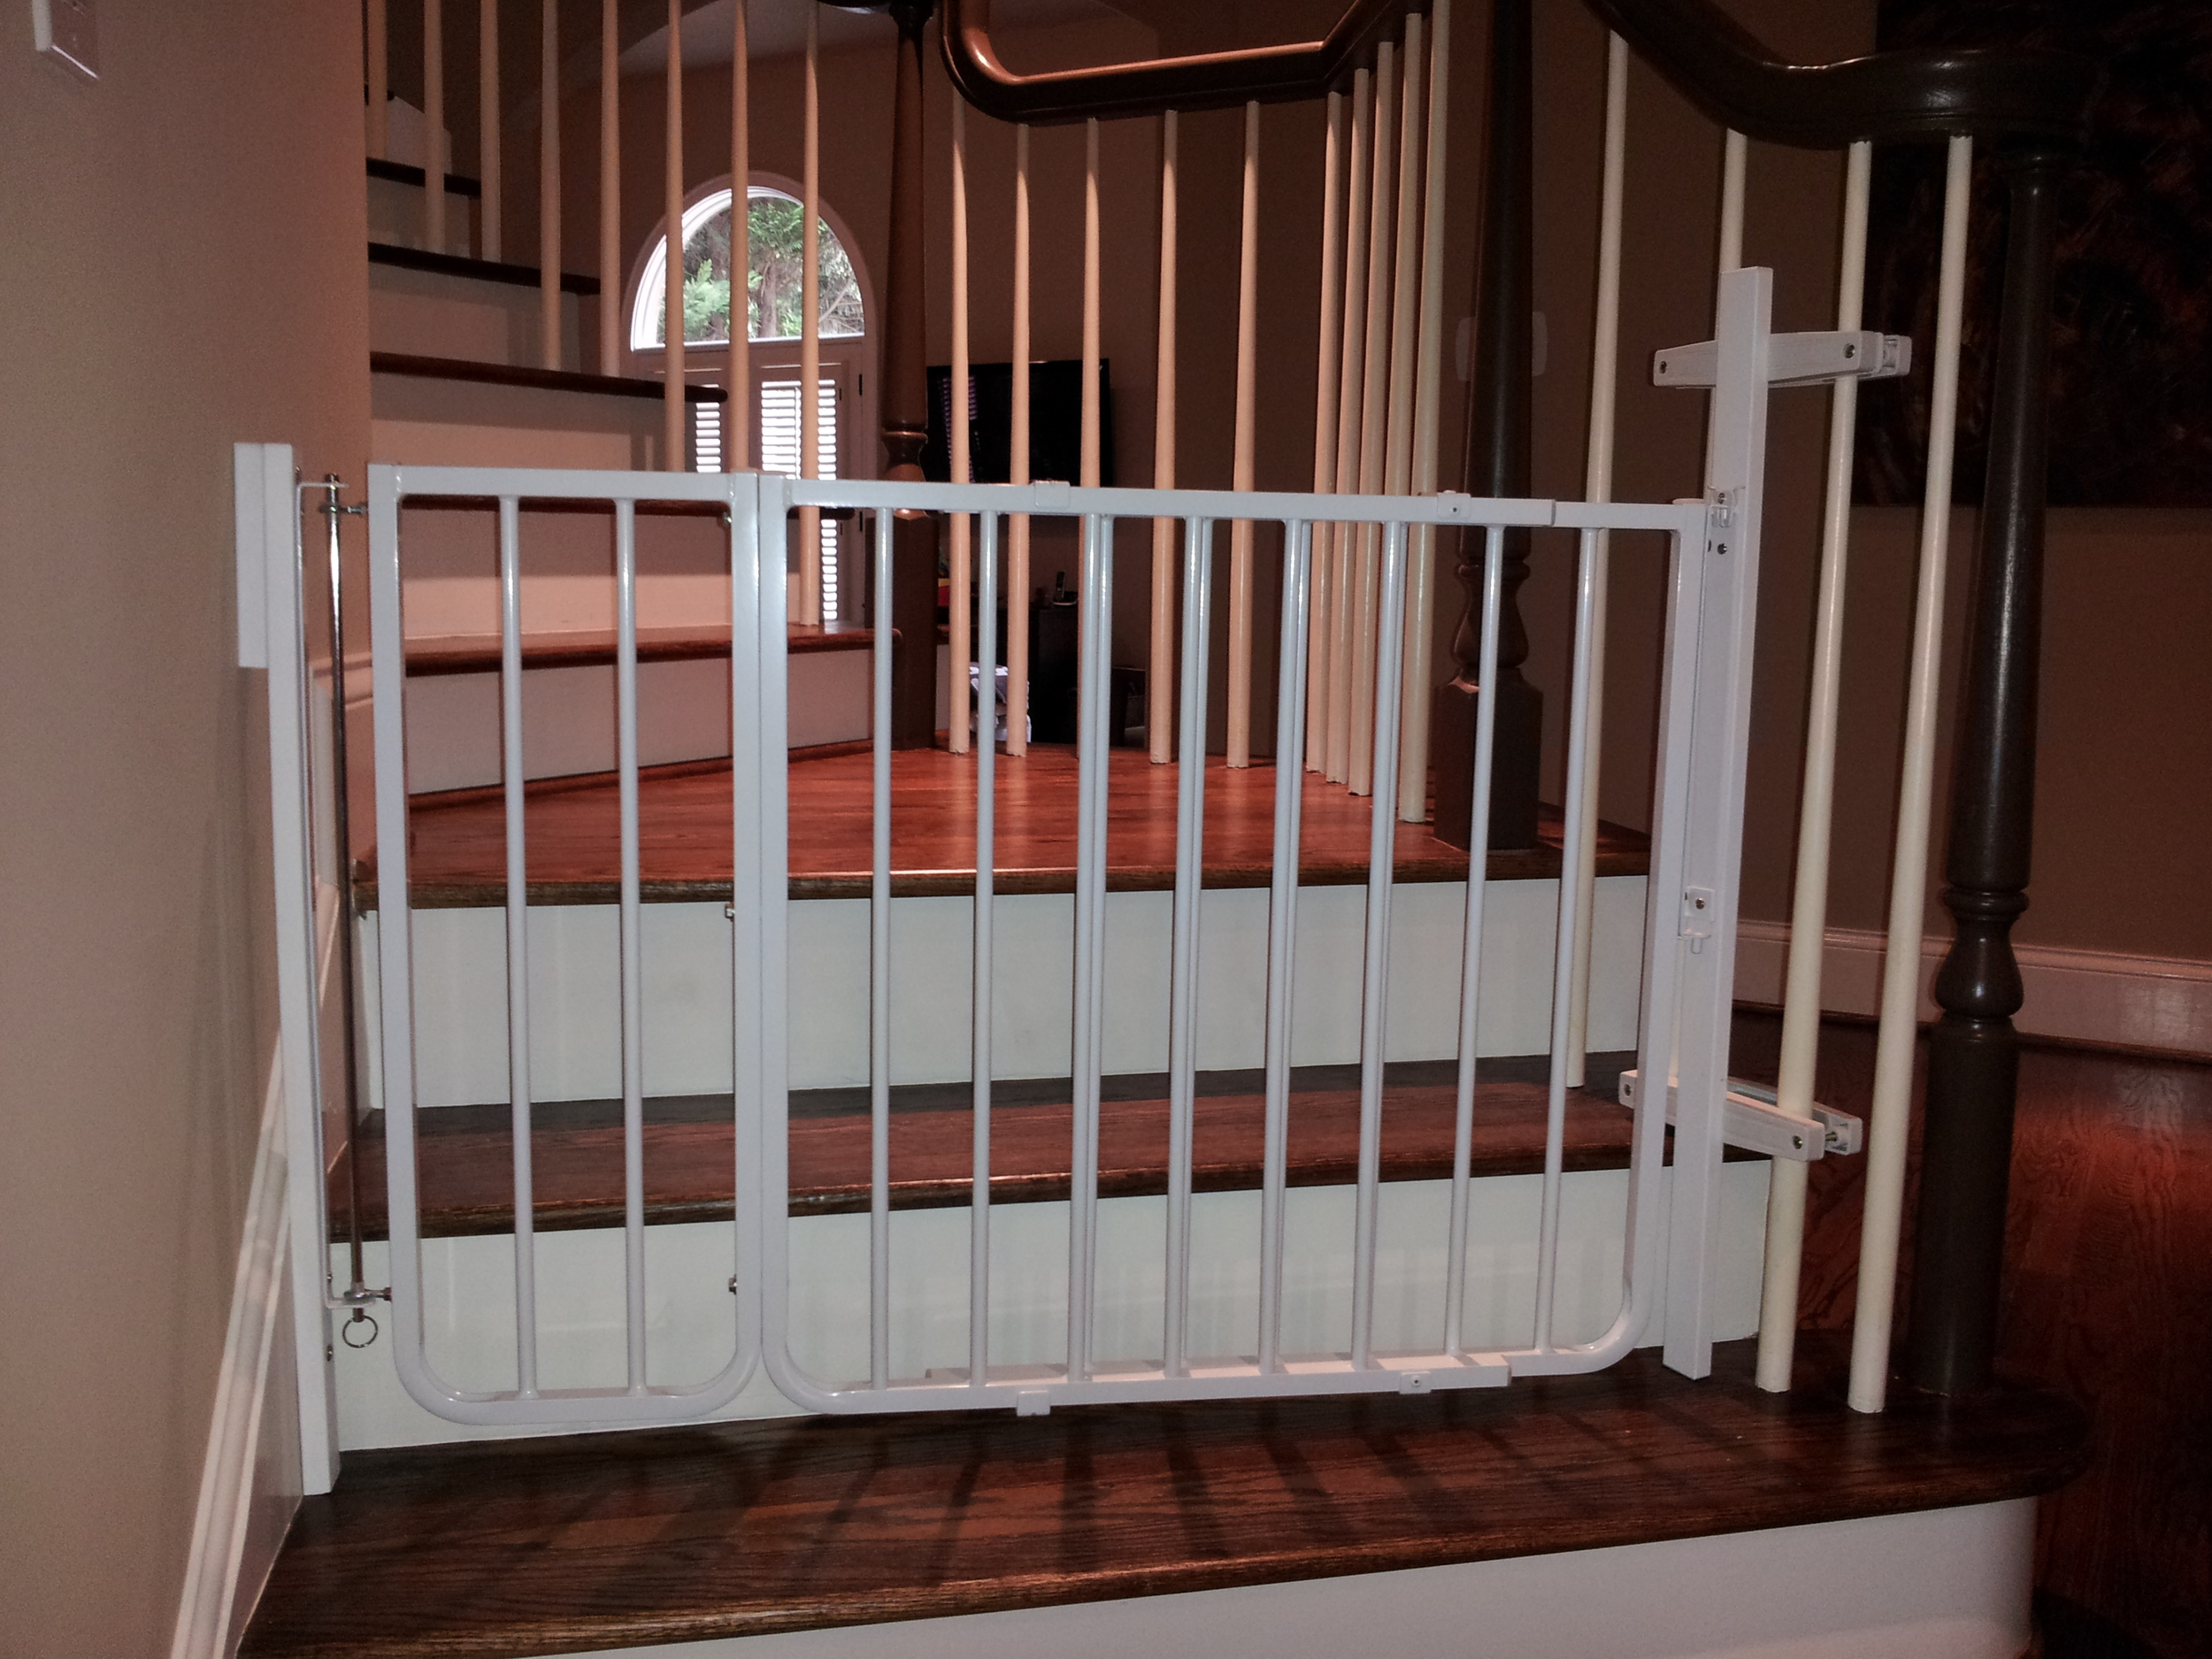 Stair gate installed using non-damaging spindle post bracket and extension for wide width